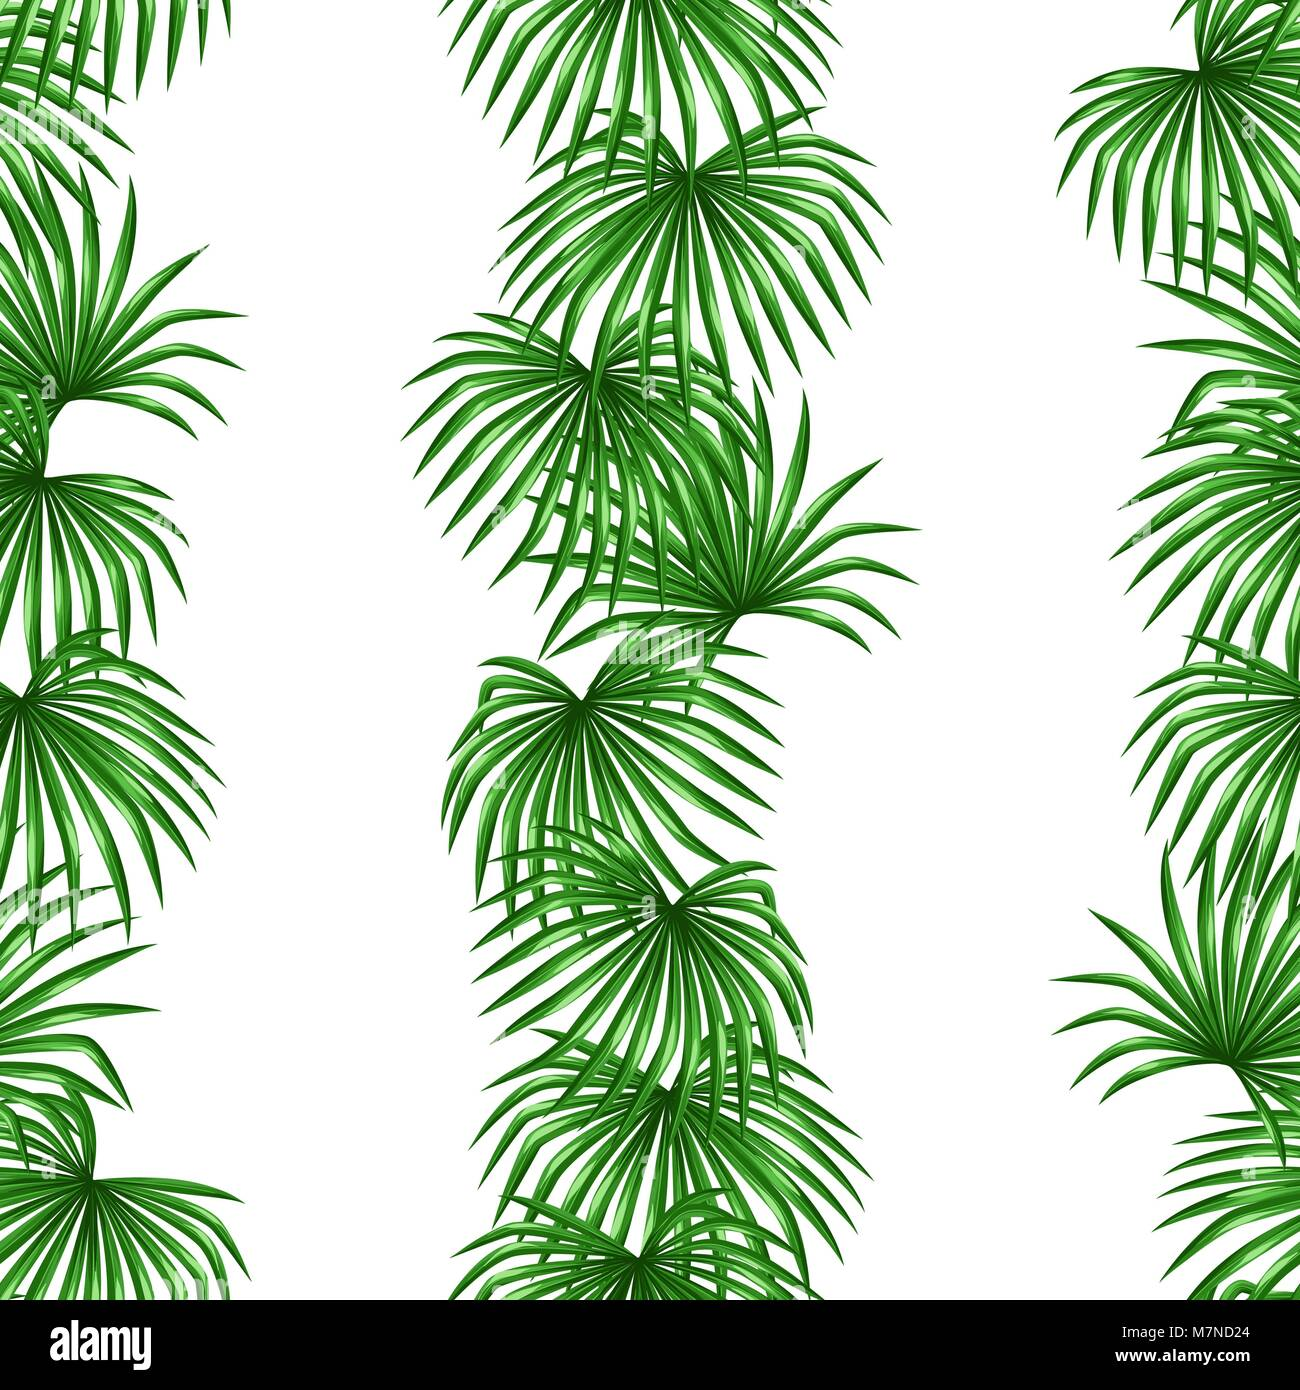 Seamless Pattern With Palms Leaves Decorative Image Tropical Leaf Of Stock Vector Image Art Alamy Free for commercial use no attribution required high quality images. https www alamy com stock photo seamless pattern with palms leaves decorative image tropical leaf 176877516 html